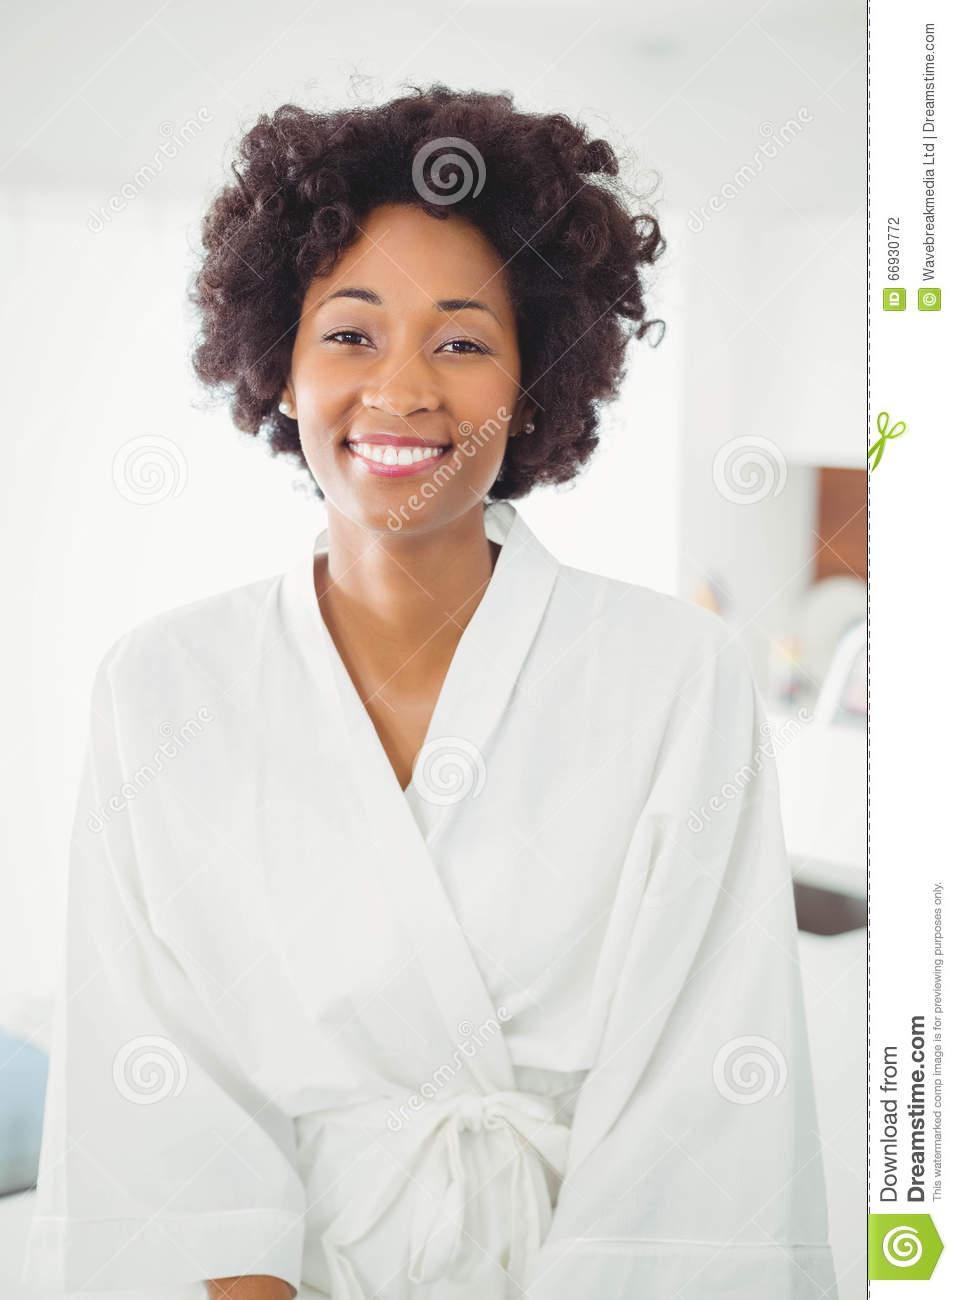 Pretty Woman In Bath Robe Smiling At The Camera Stock Photo - Image ...